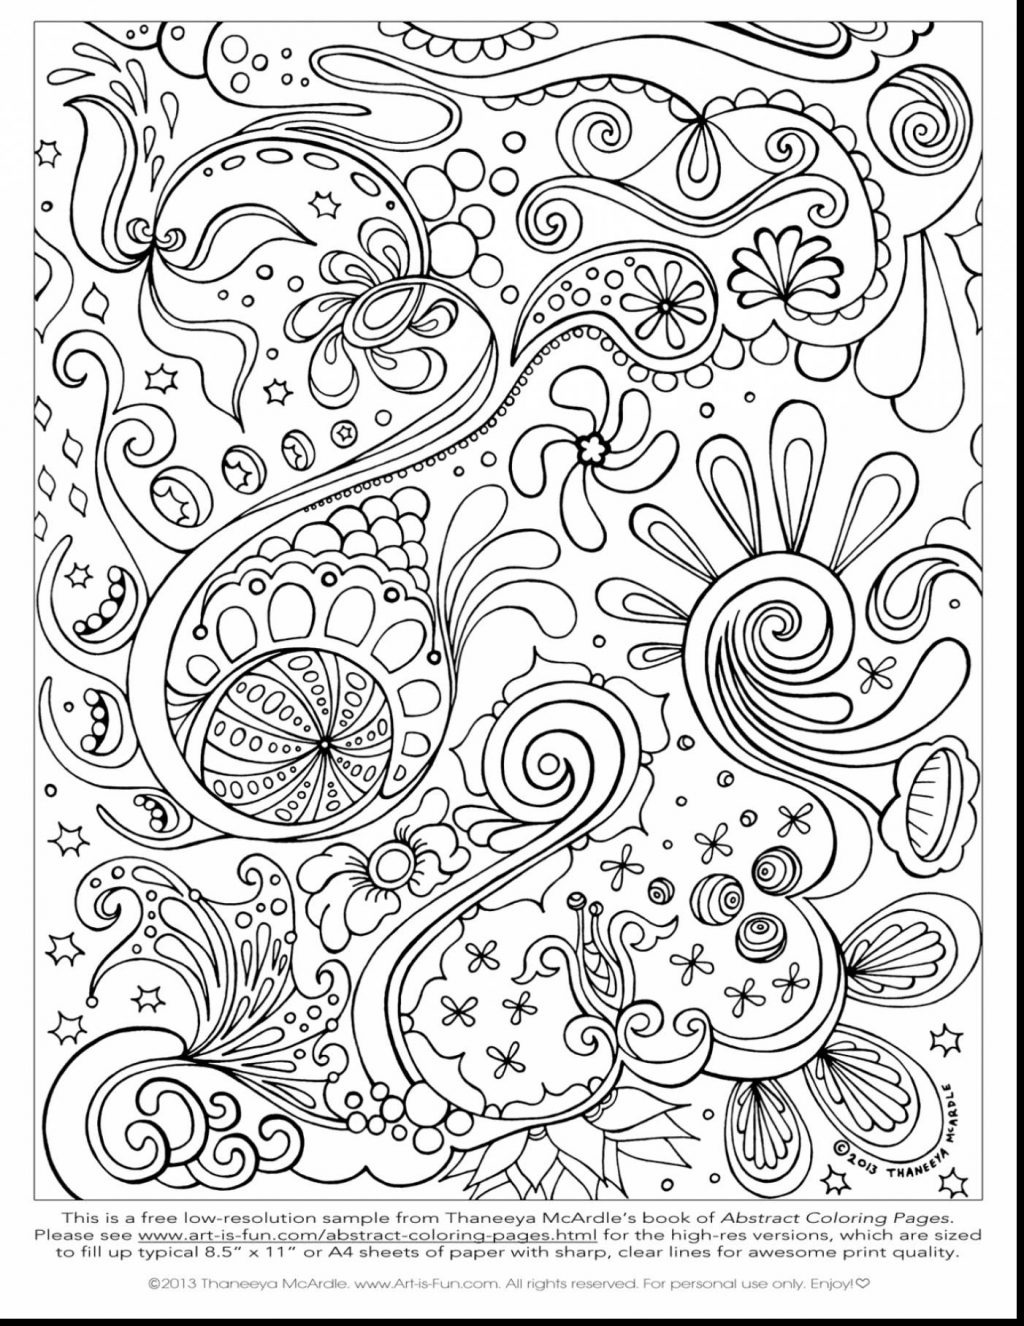 Coloring Page: Extraordinary Free Printable Coloring Pages For - Free Printable Coloring Pages For Adults Pdf